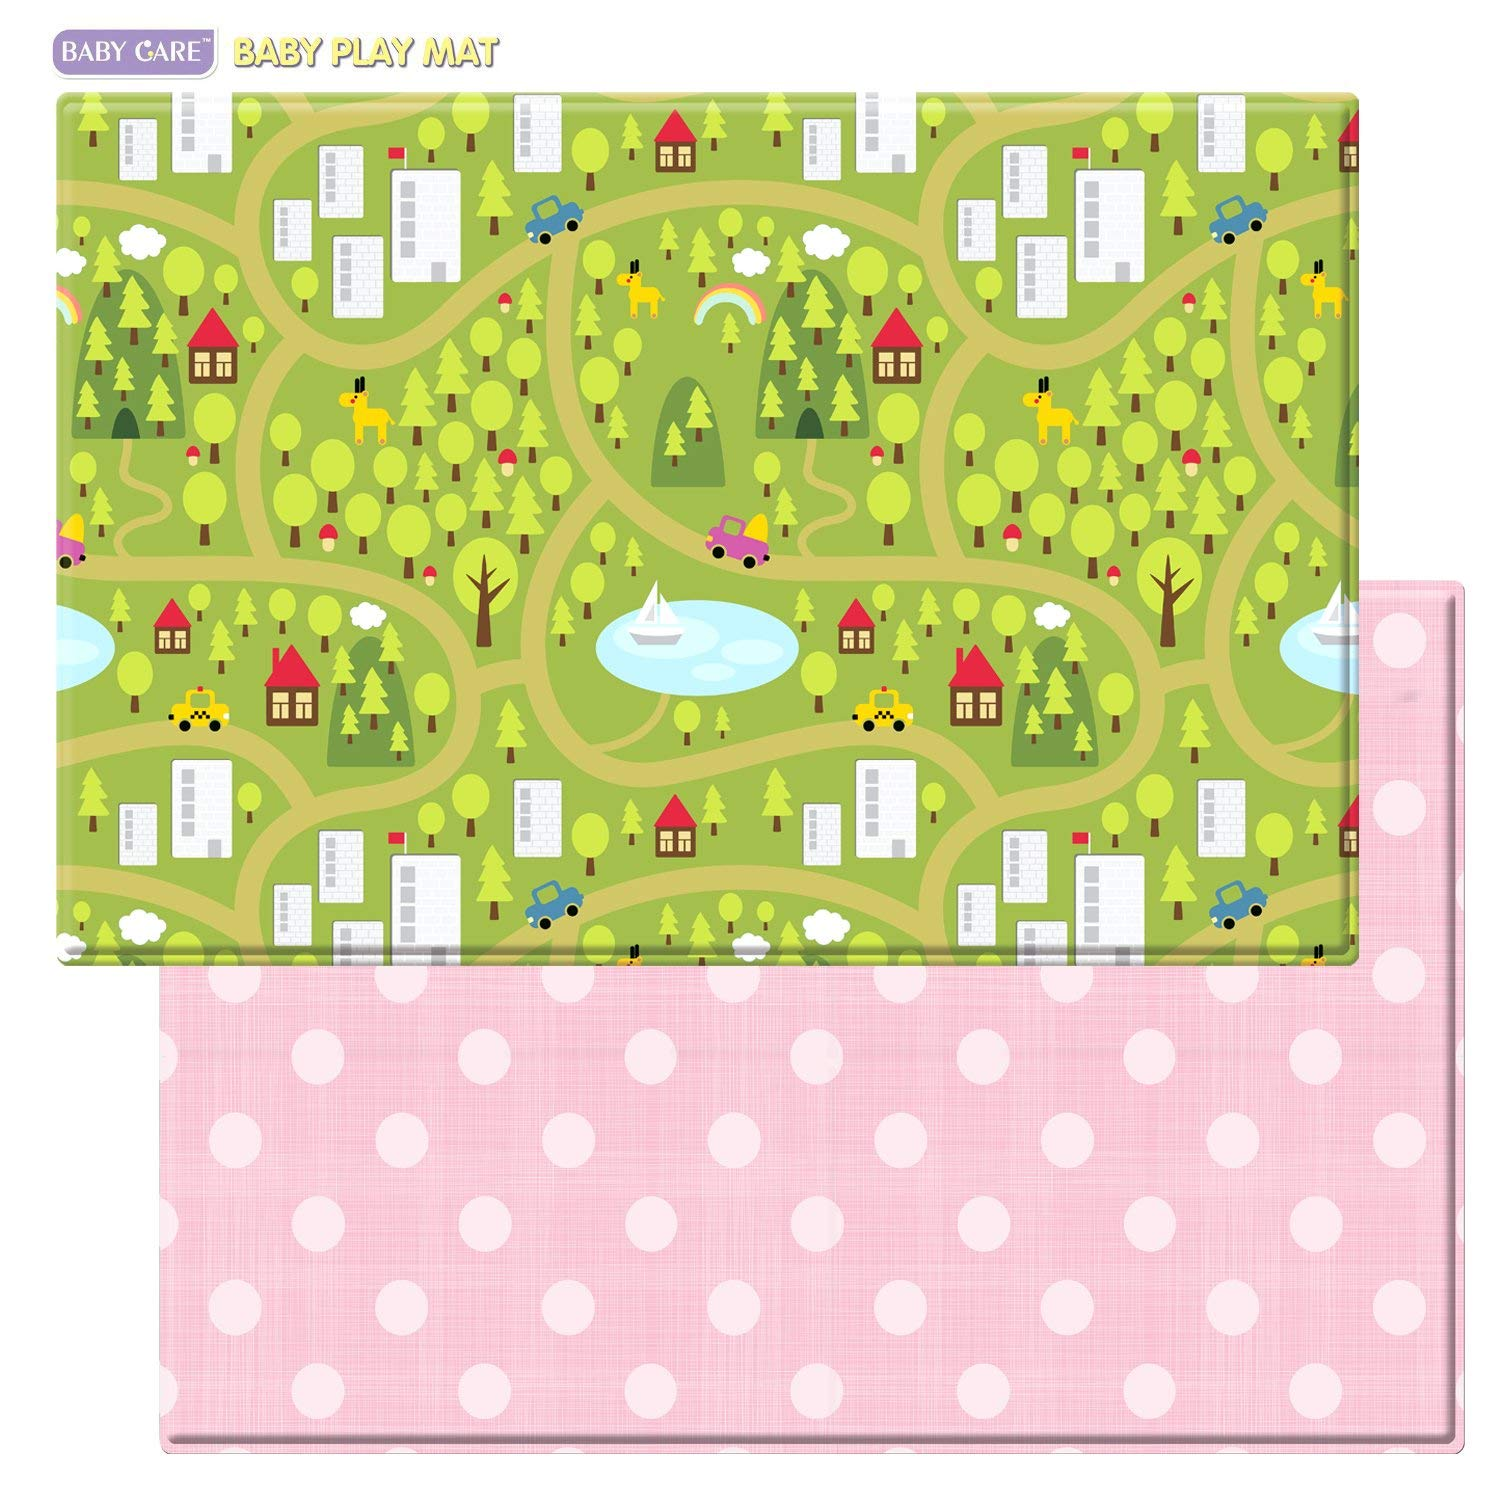 Baby Care Play Mat - Playful Collection (Country Town - Pink, Large) - Play Mat for Infants – Non-Toxic Baby Rug – Cushioned Baby Mat Waterproof Playmat – Reversible Double-Sided Kindergarten Mat